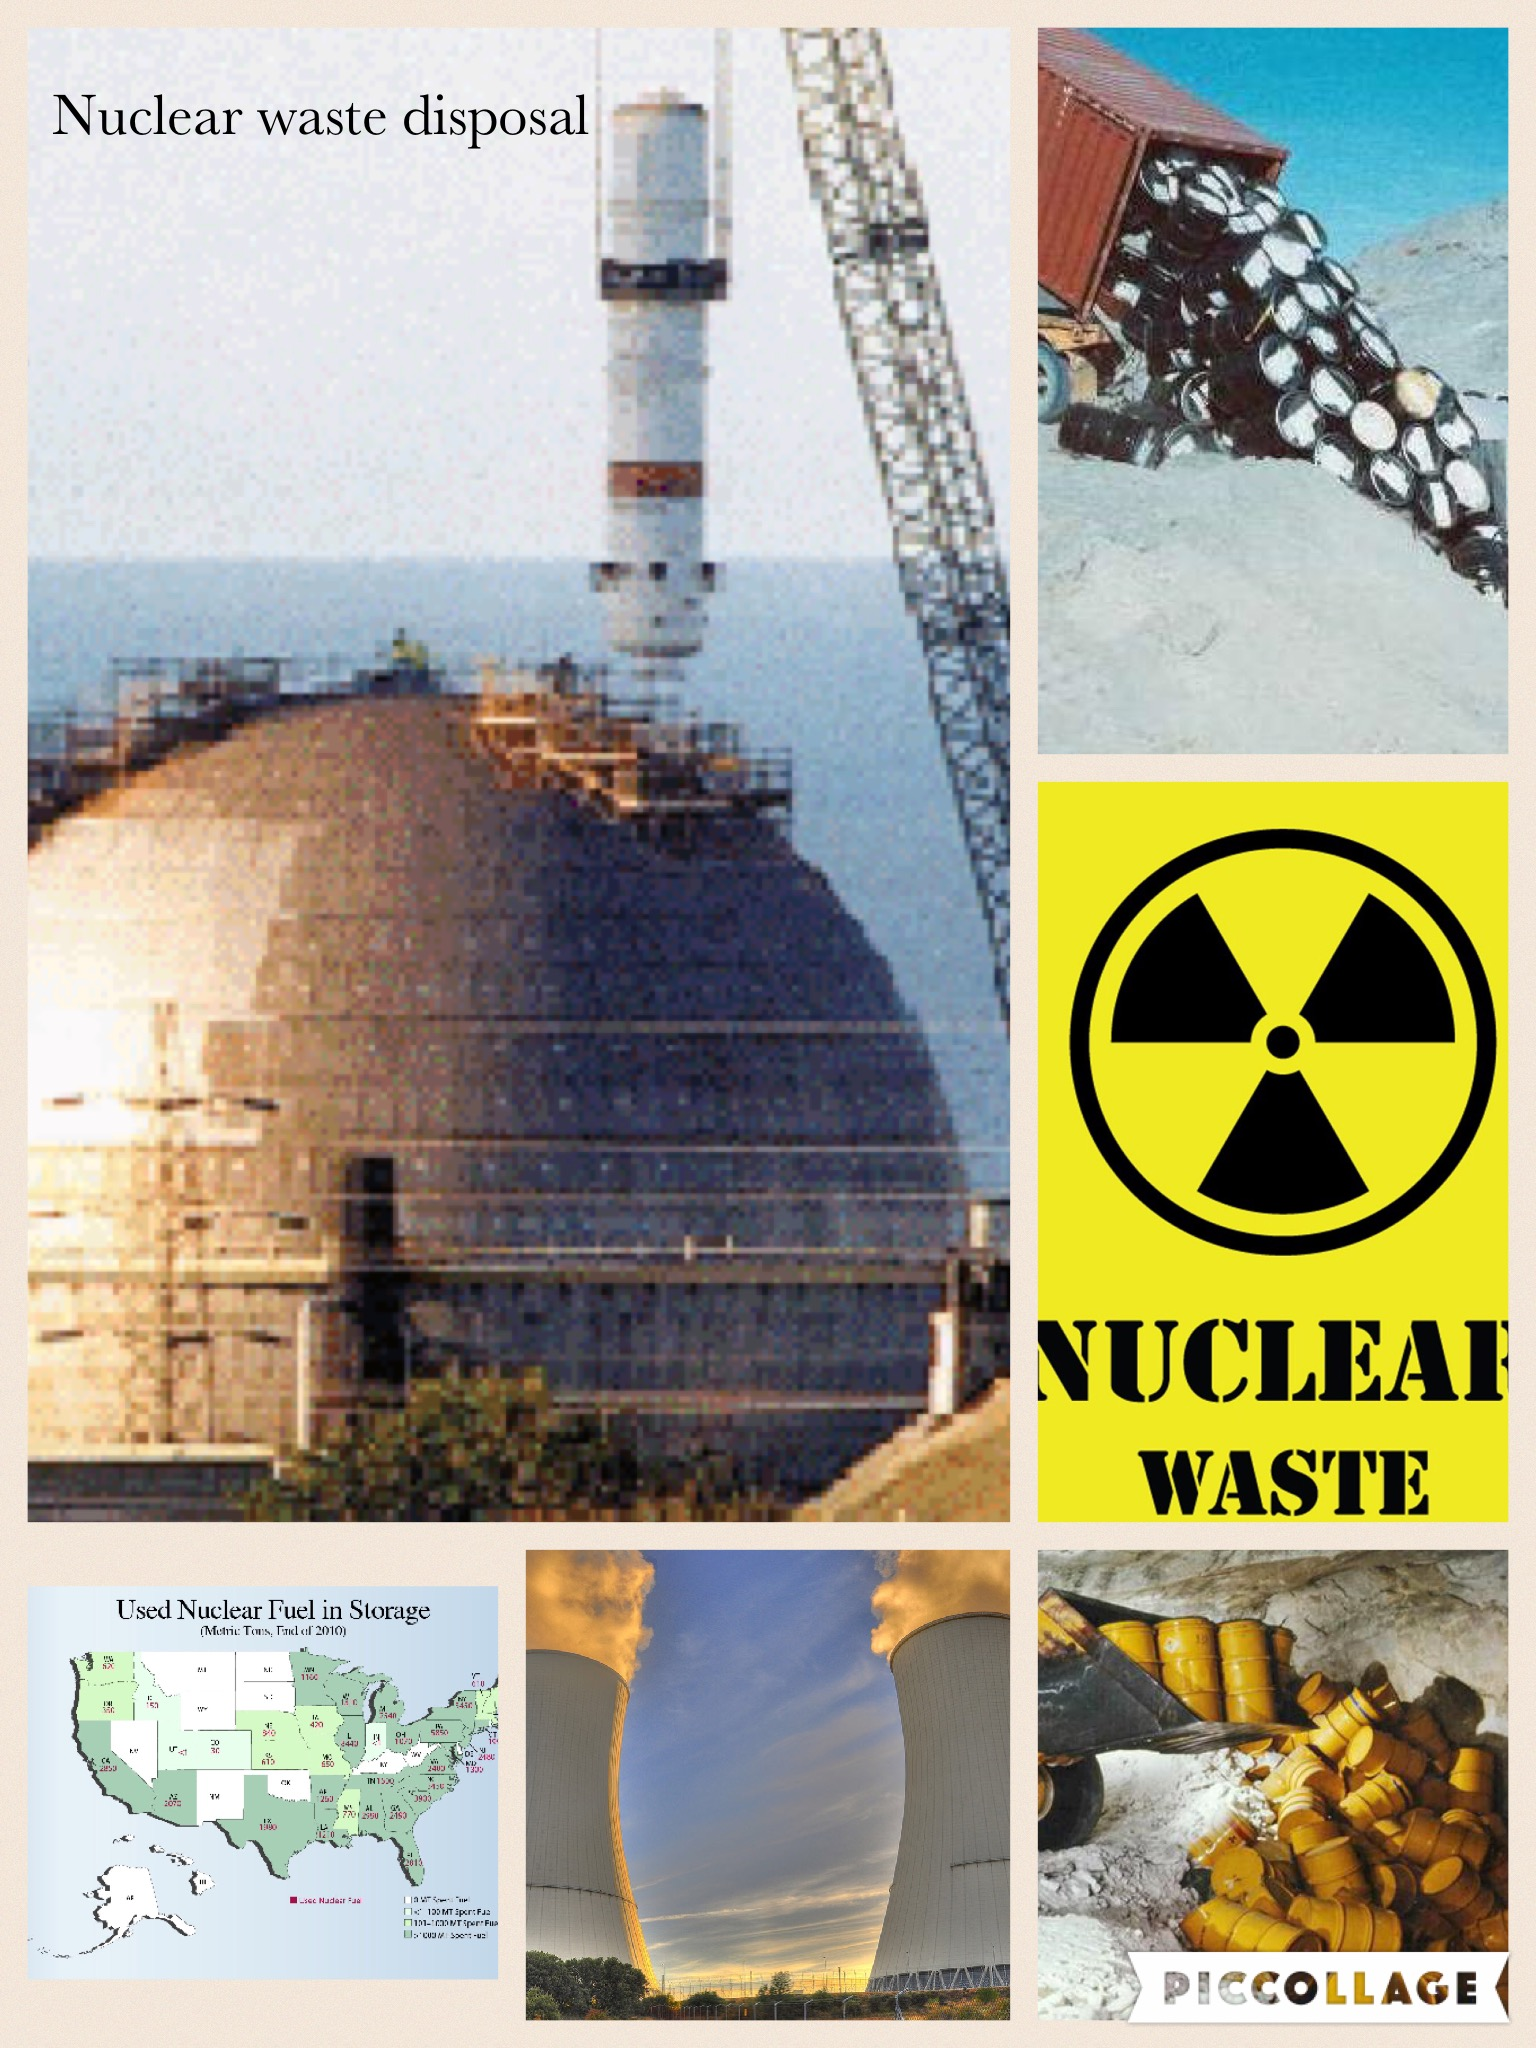 nuclear waste disposal how the concerned However, the disposal of nuclear waste by storage still has many concern, since the leakage of the nuclear waste may cause huge environmental disaster these techniques are still under development © xi xie.